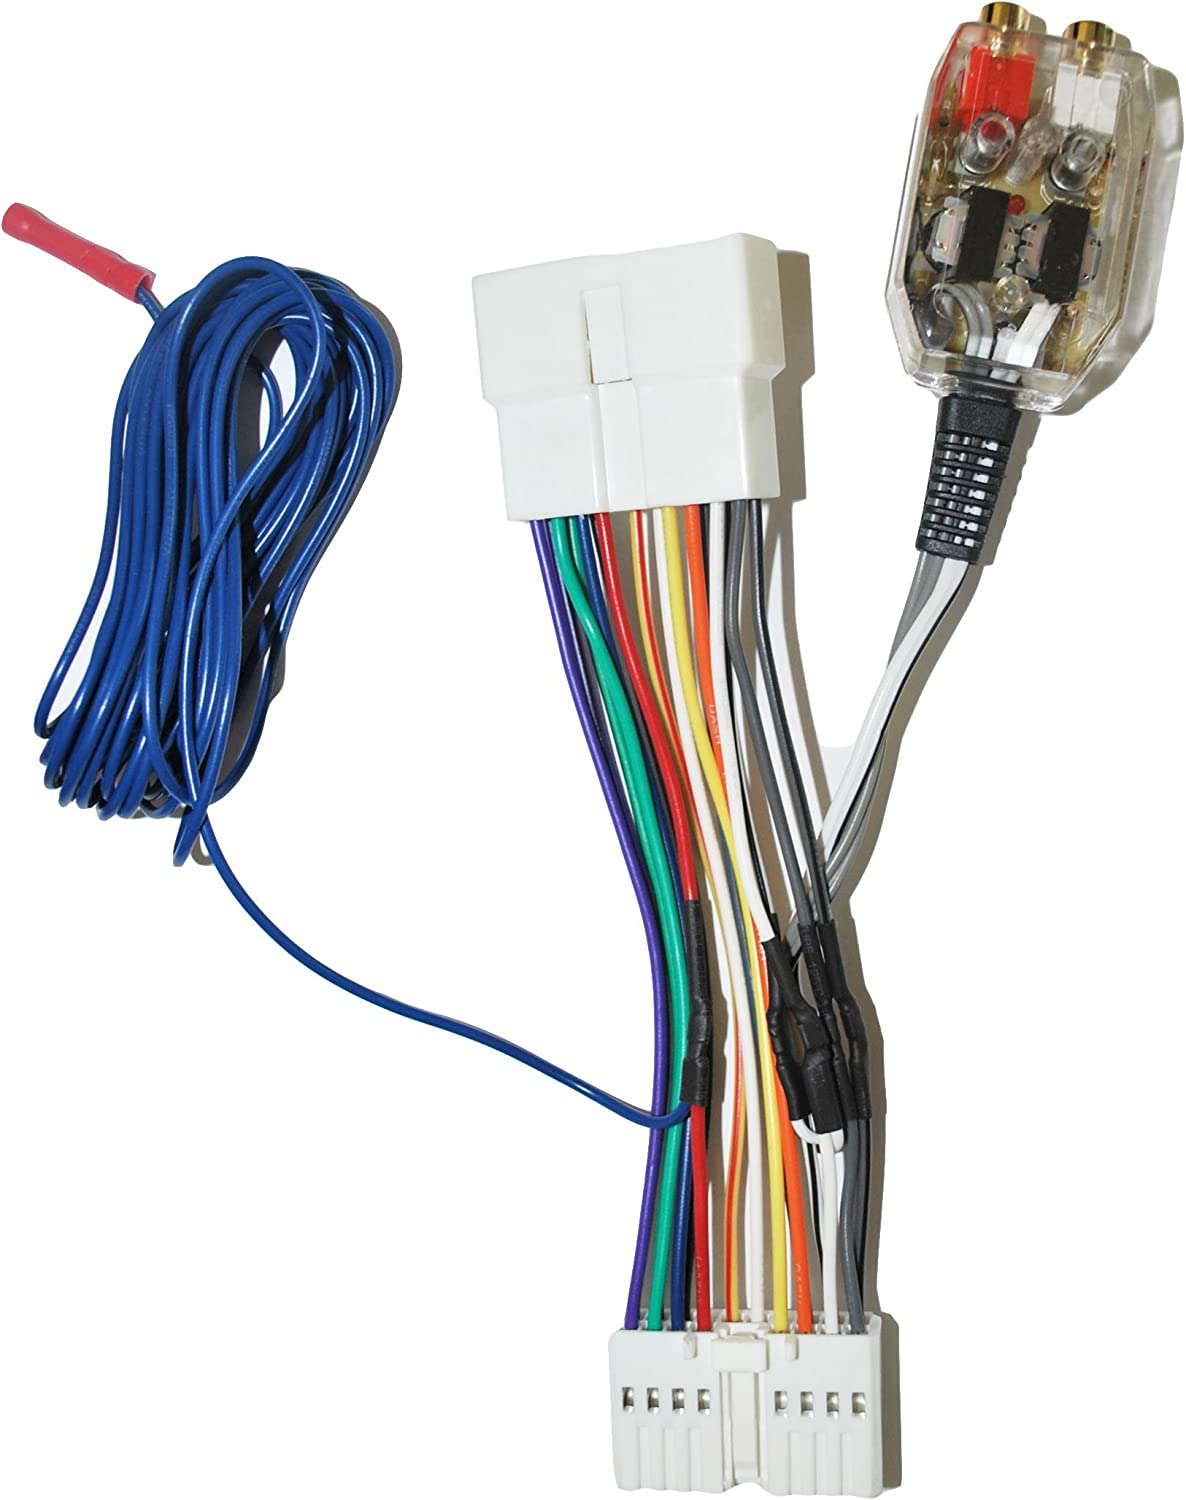 acura tl amp wiring amazon com factory radio add a amp amplifier sub interface wire  factory radio add a amp amplifier sub